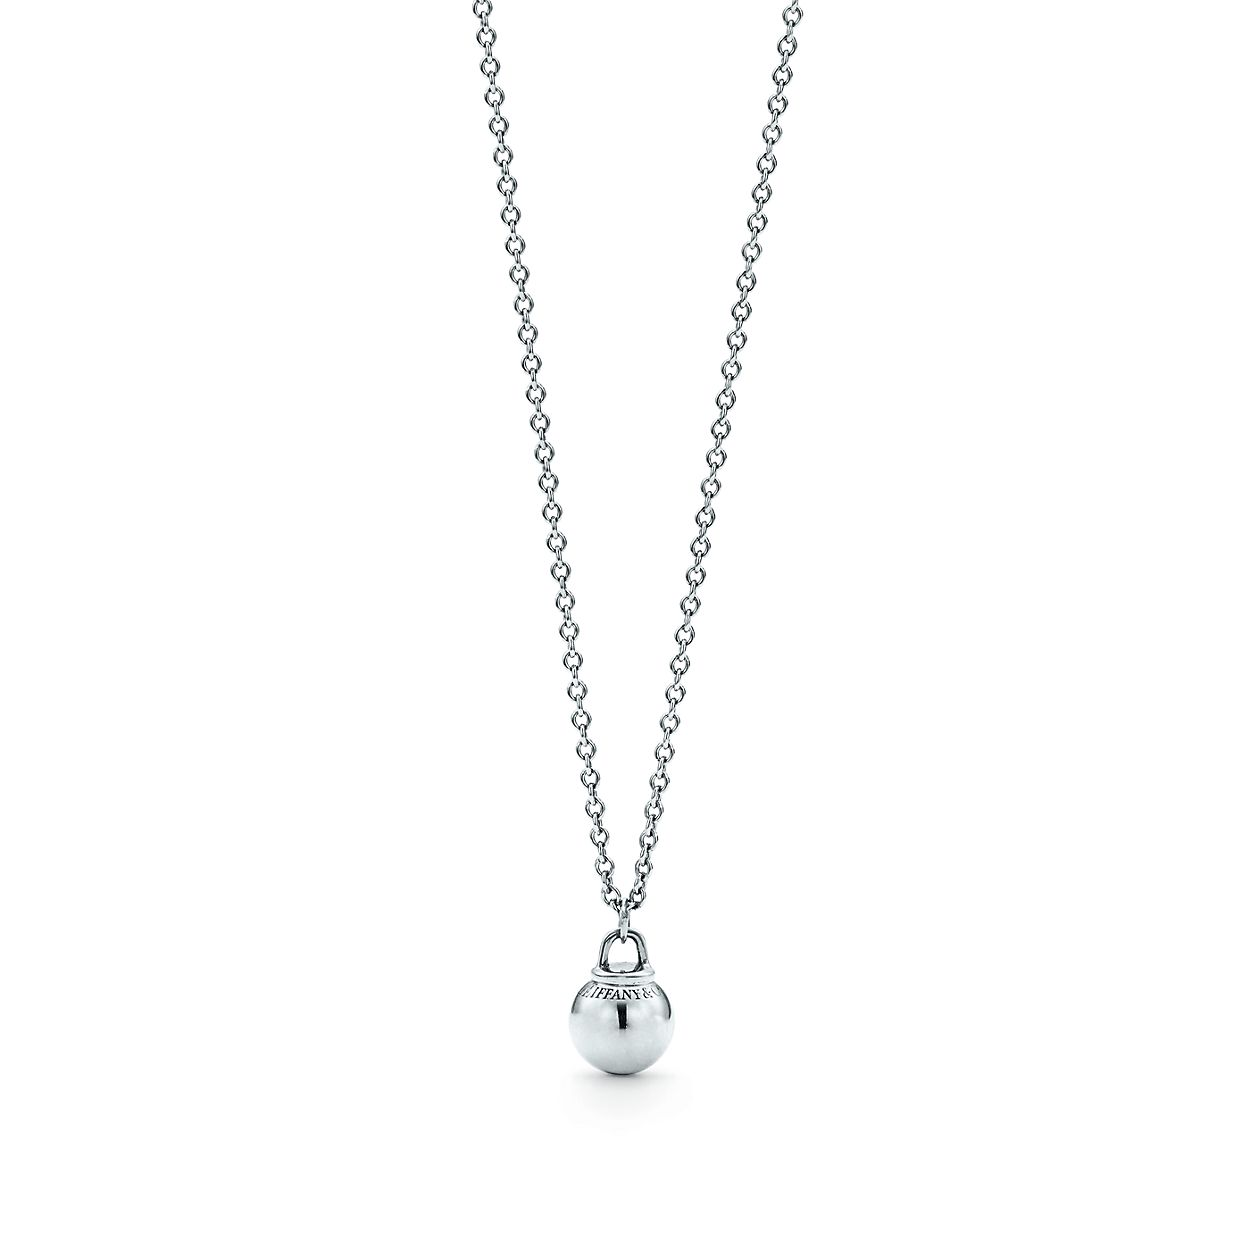 Tiffany hardwear ball pendant in sterling silver tiffany co tiffany hardwearball pendant tiffany hardwearball pendant aloadofball Images